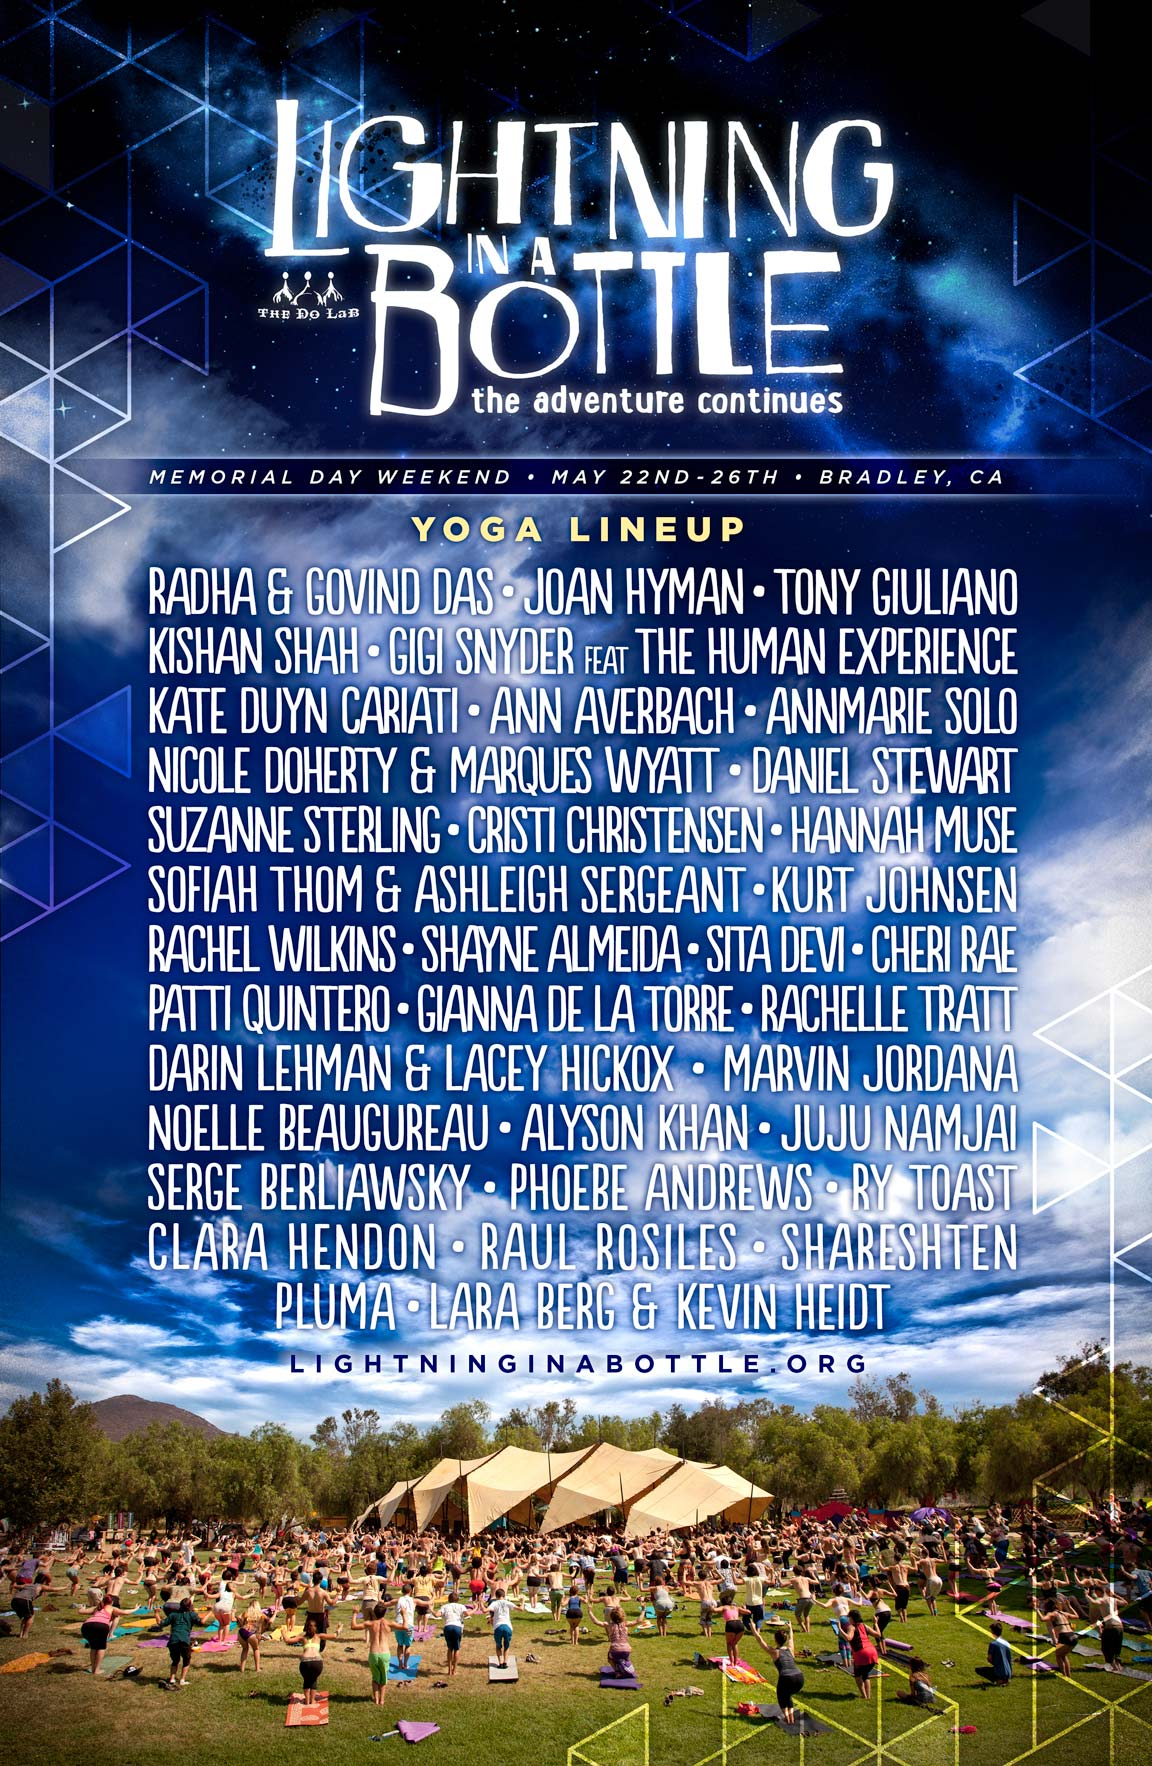 Lighting In A Bottle 2017 Yoga Lineup